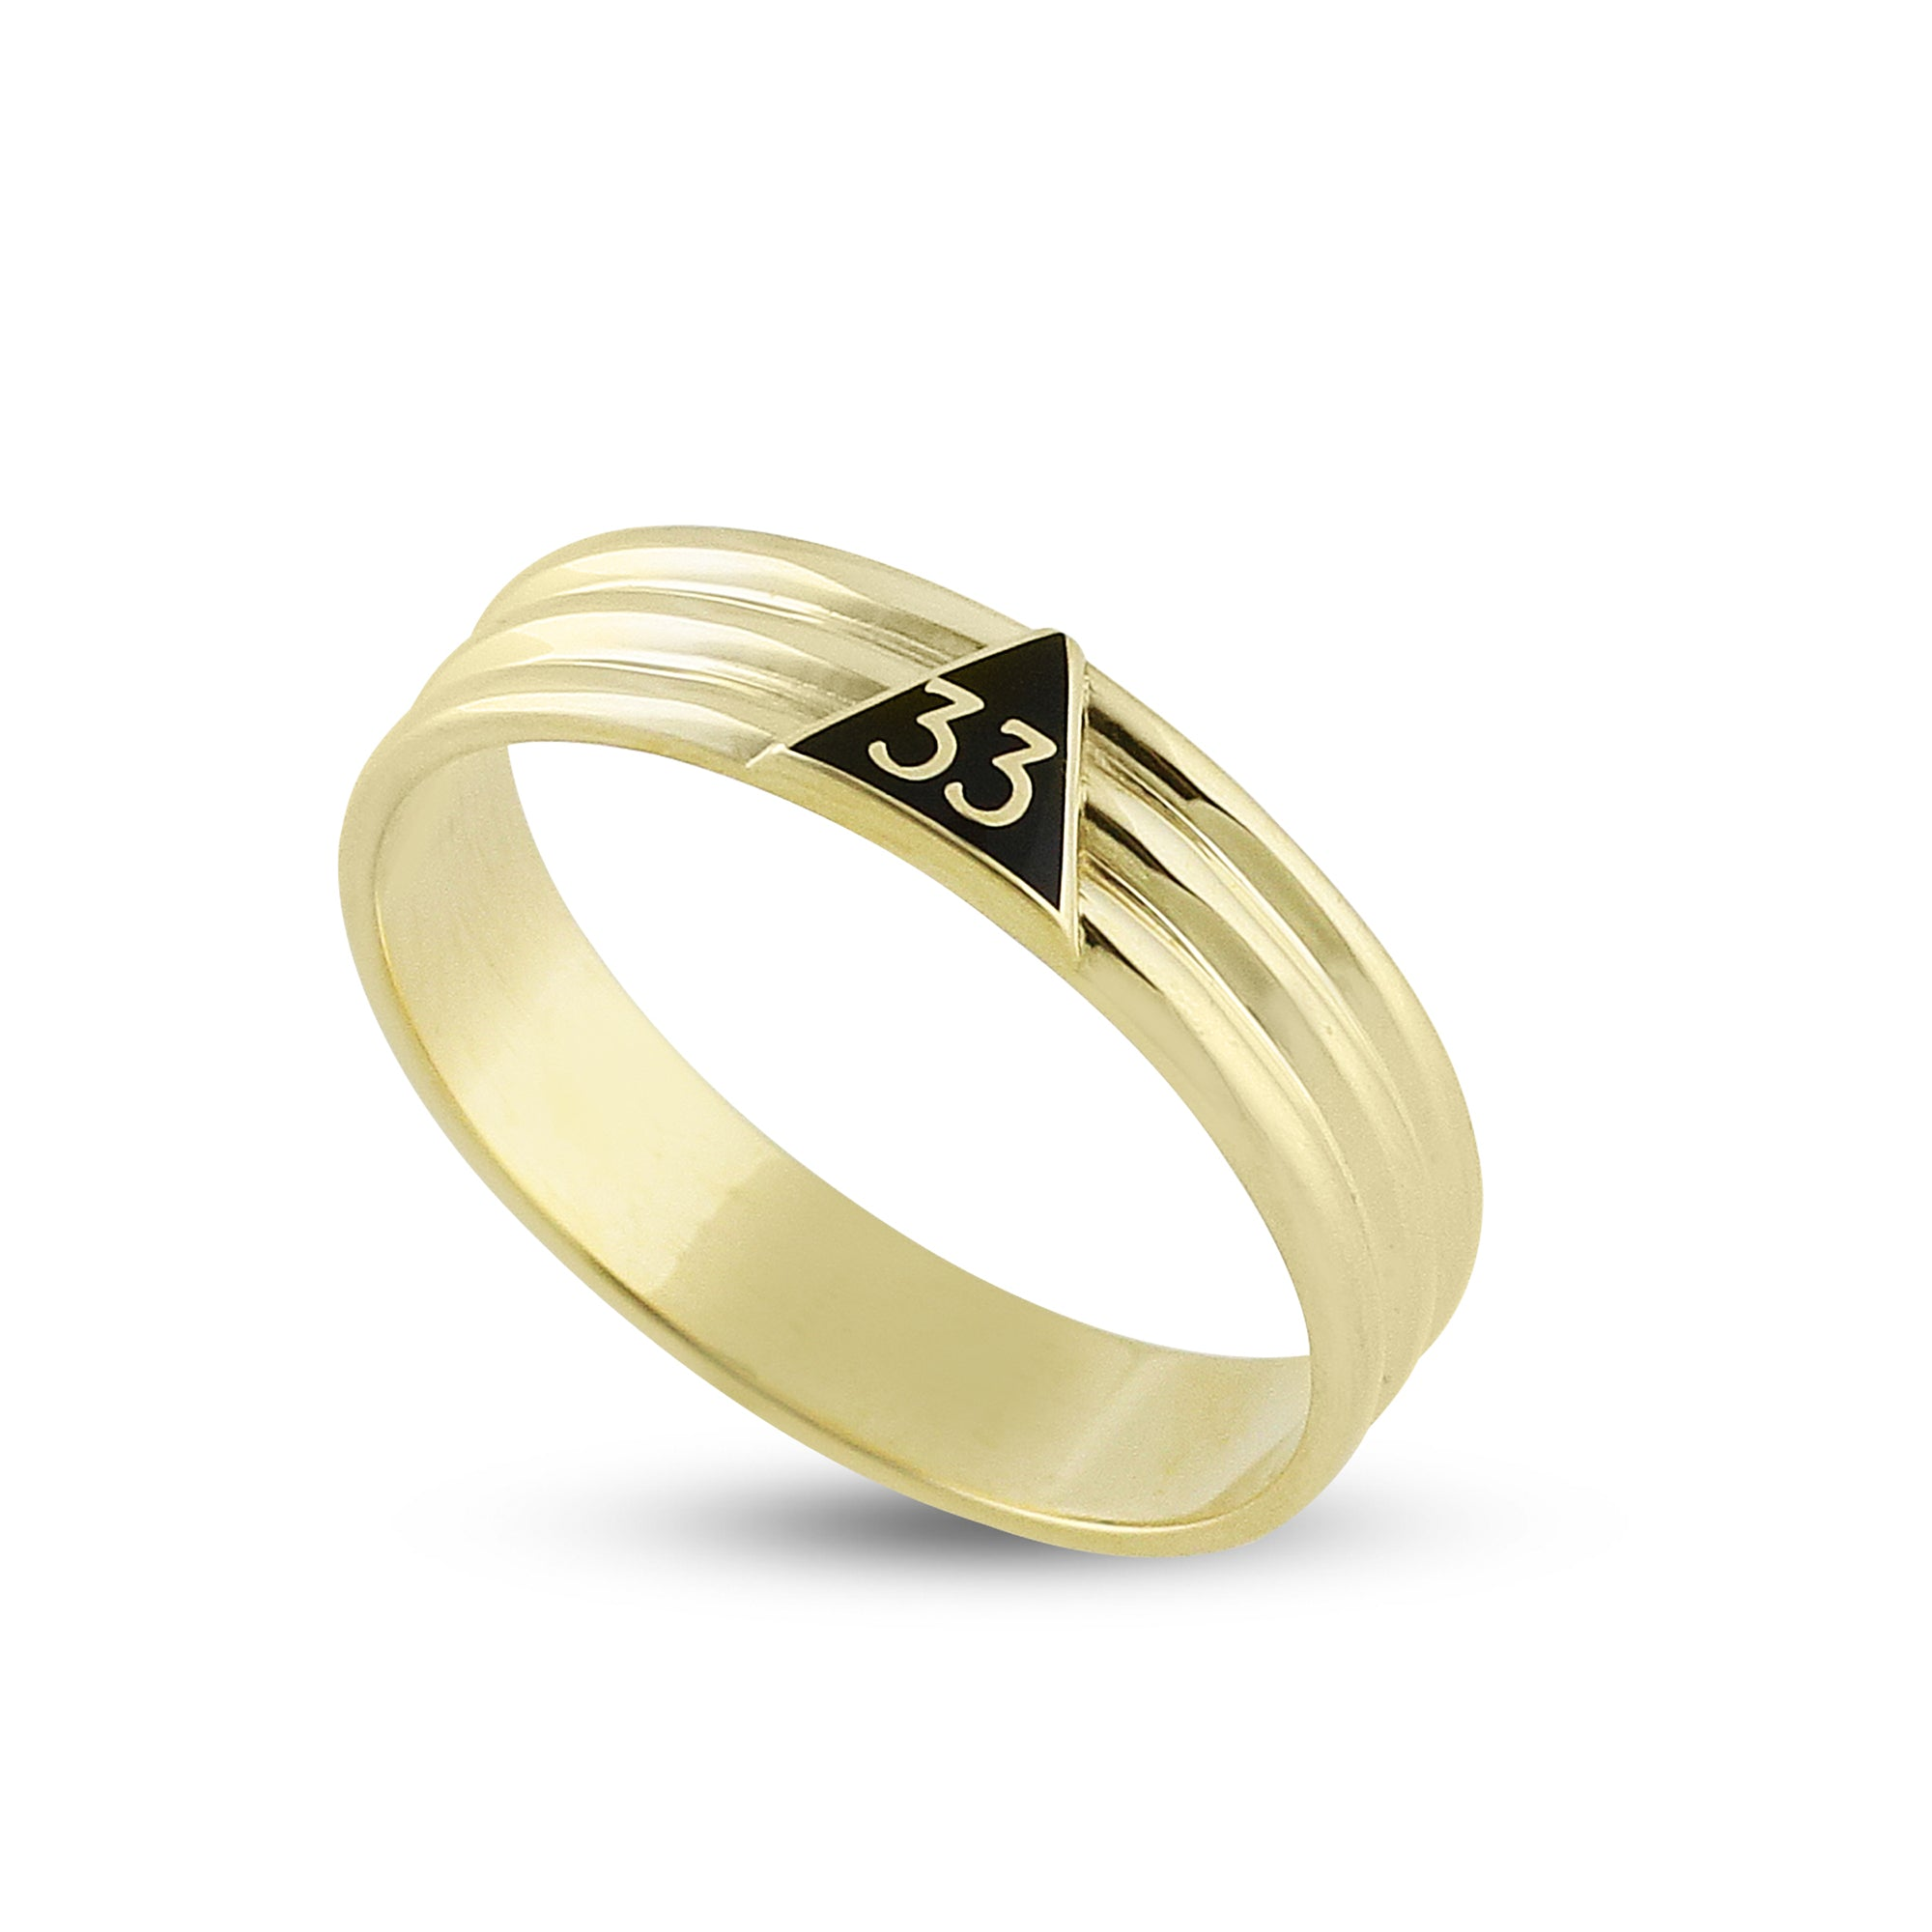 33rd Degree Lady's Mini Ring